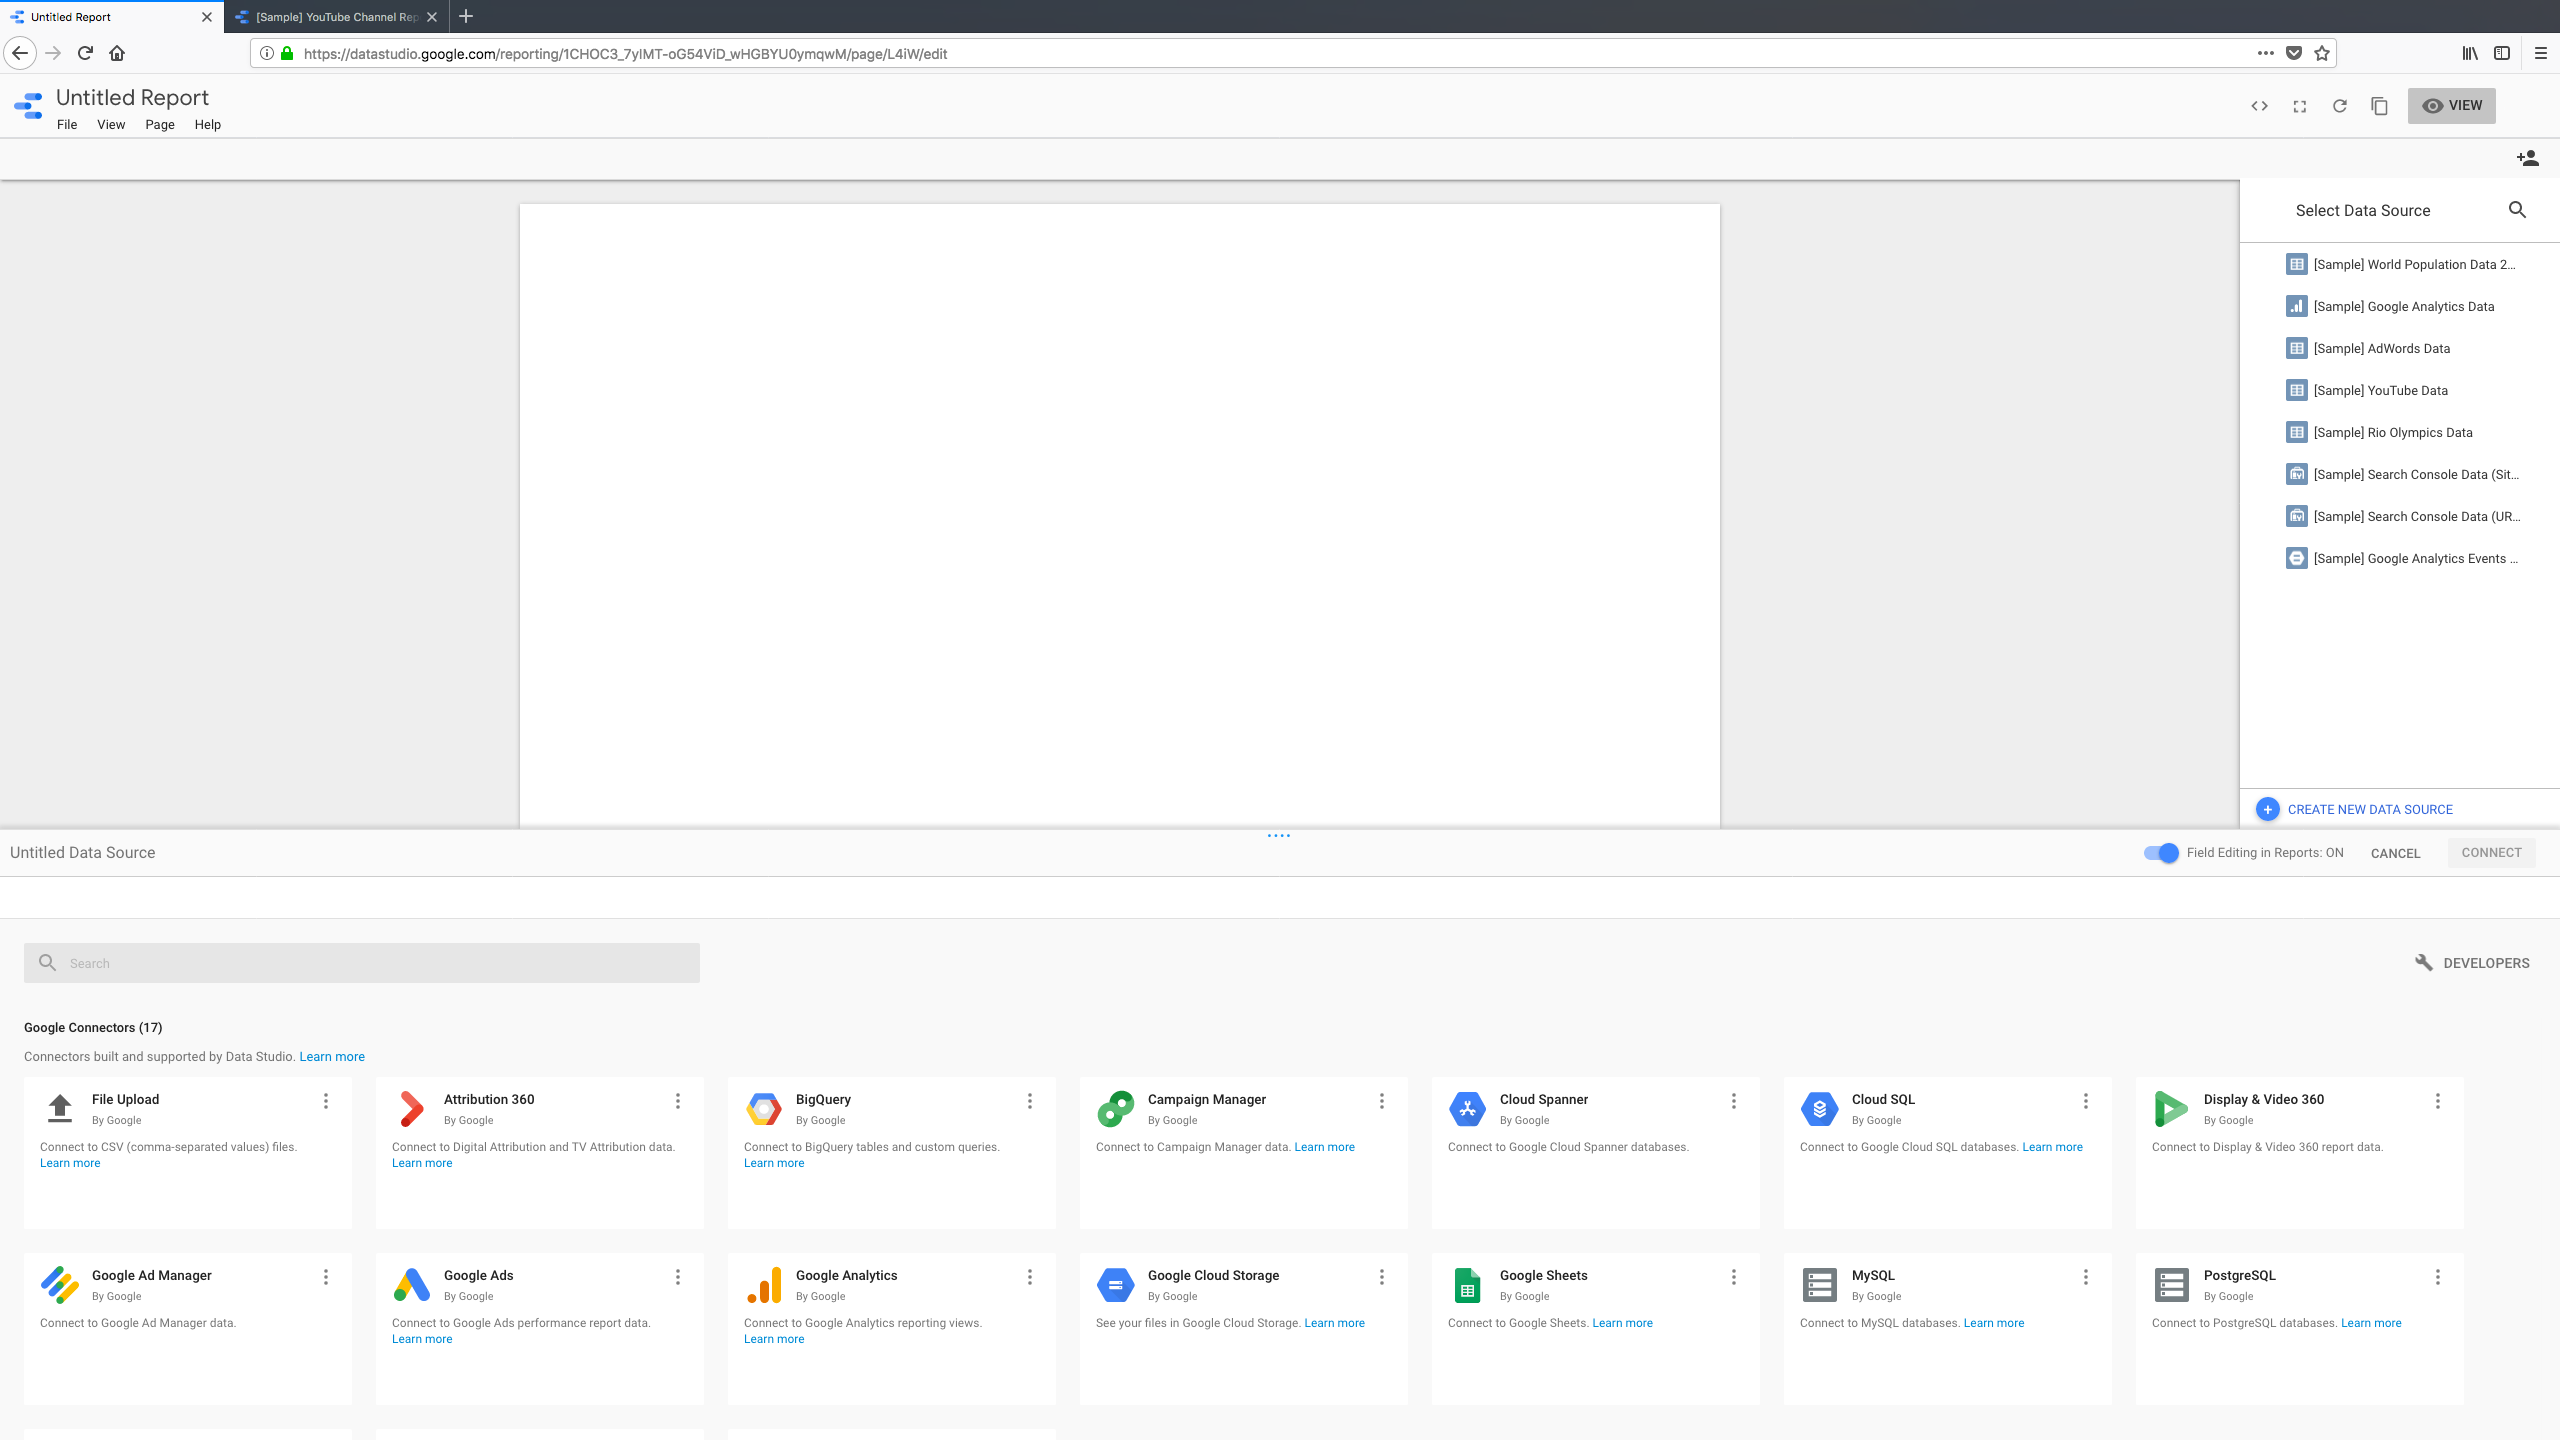 Google Data Studio Software - The drag-and-drop report editor showing the start of a new blank report and the popup panel shown below for creating a new data source to be added